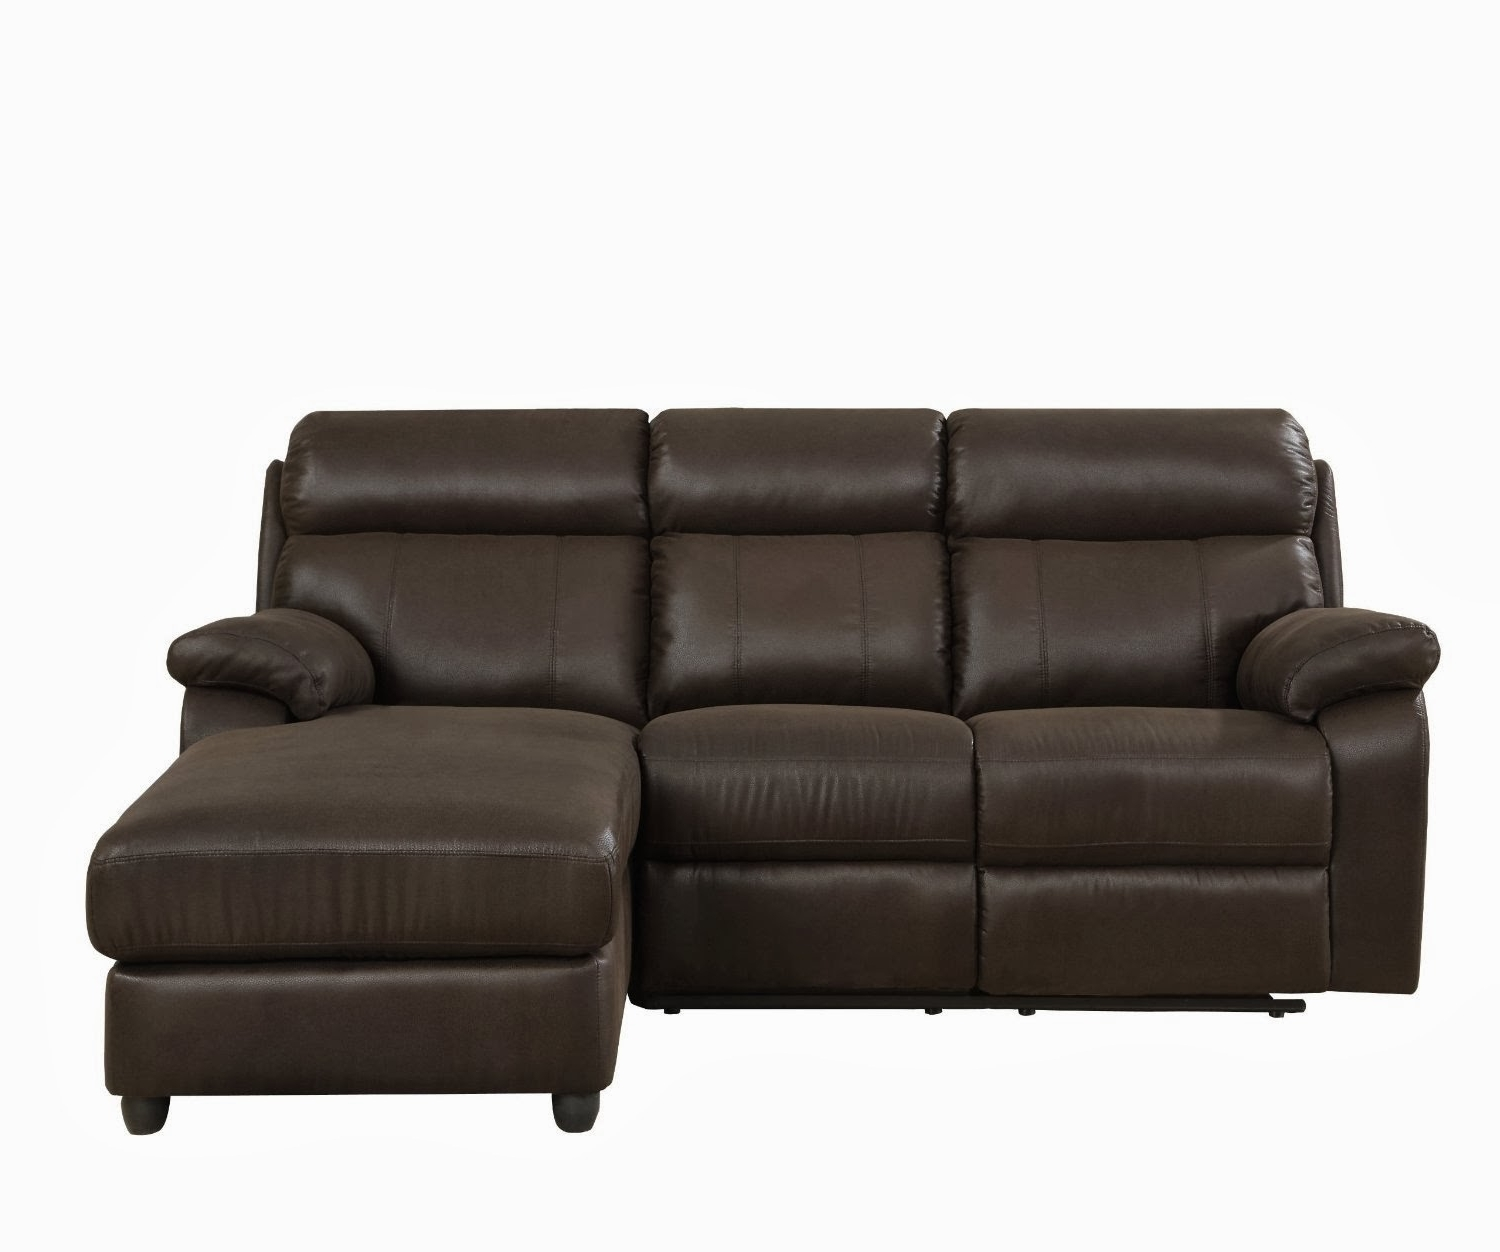 Popular Sectional Sofas With High Backs Within Small High Back Leather Sectional Sofa With Chaise For 3 – Decofurnish (View 15 of 20)